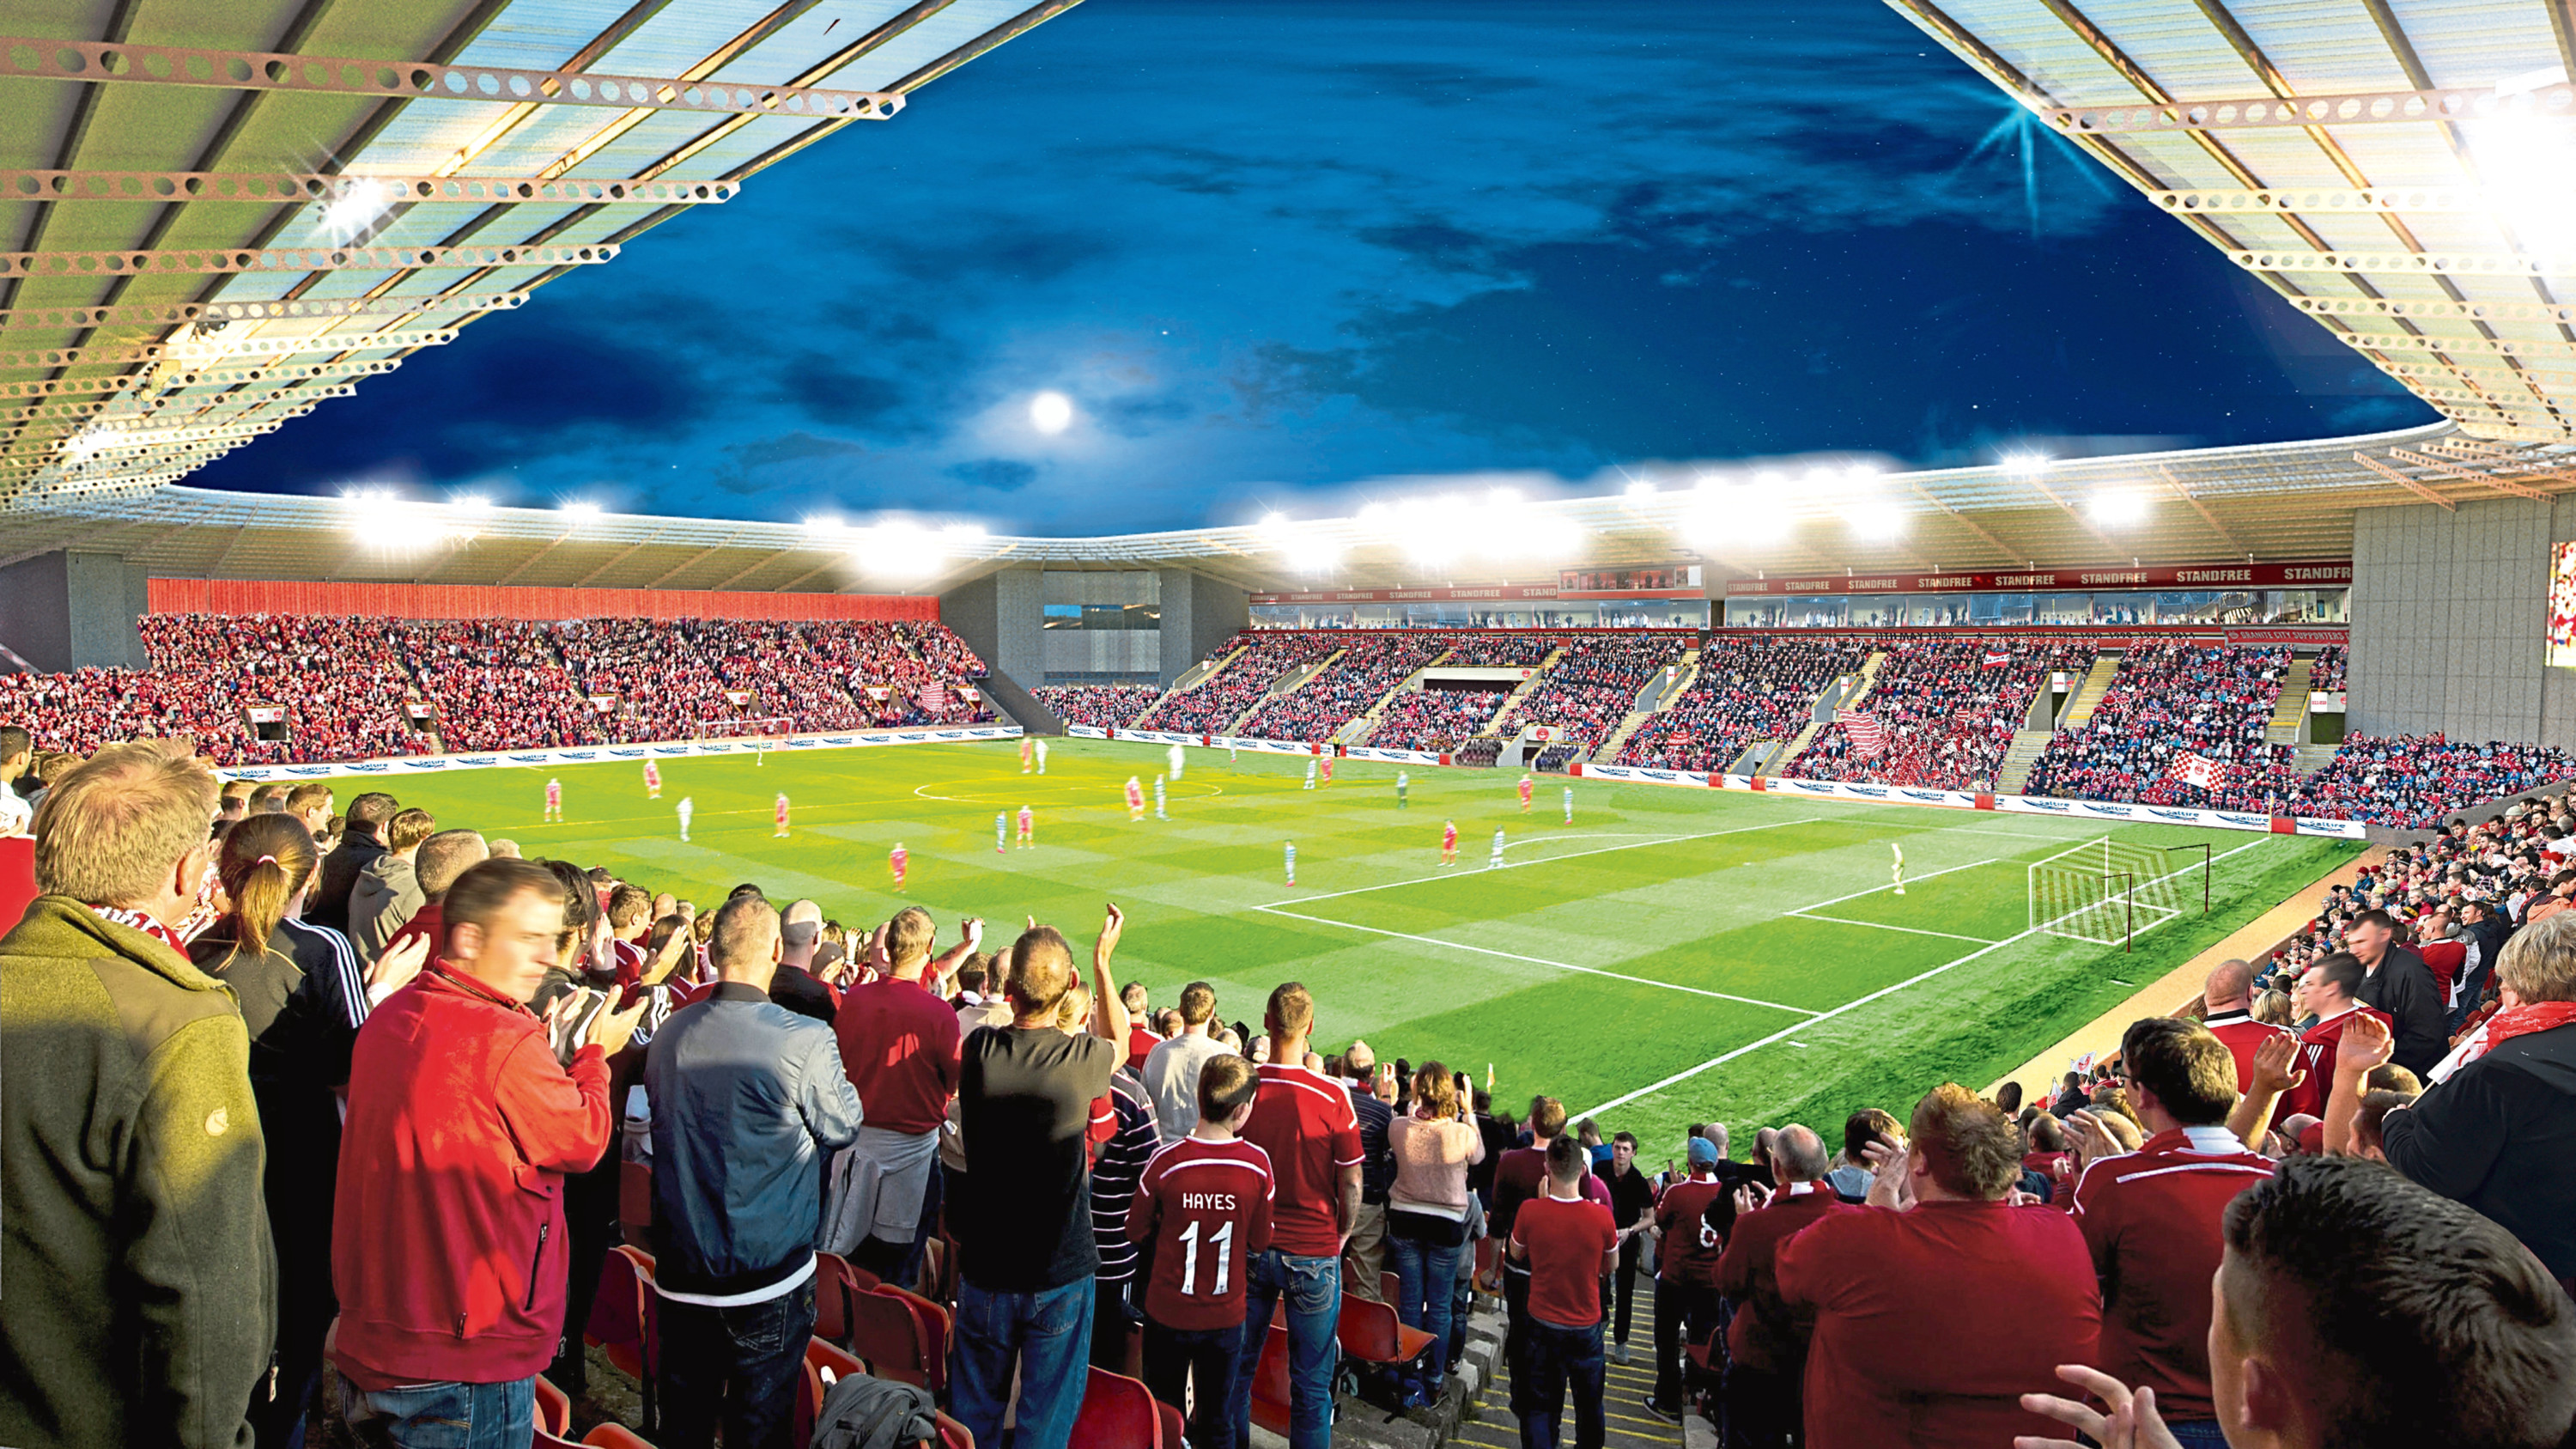 An artist impression of the Kingsford stadium